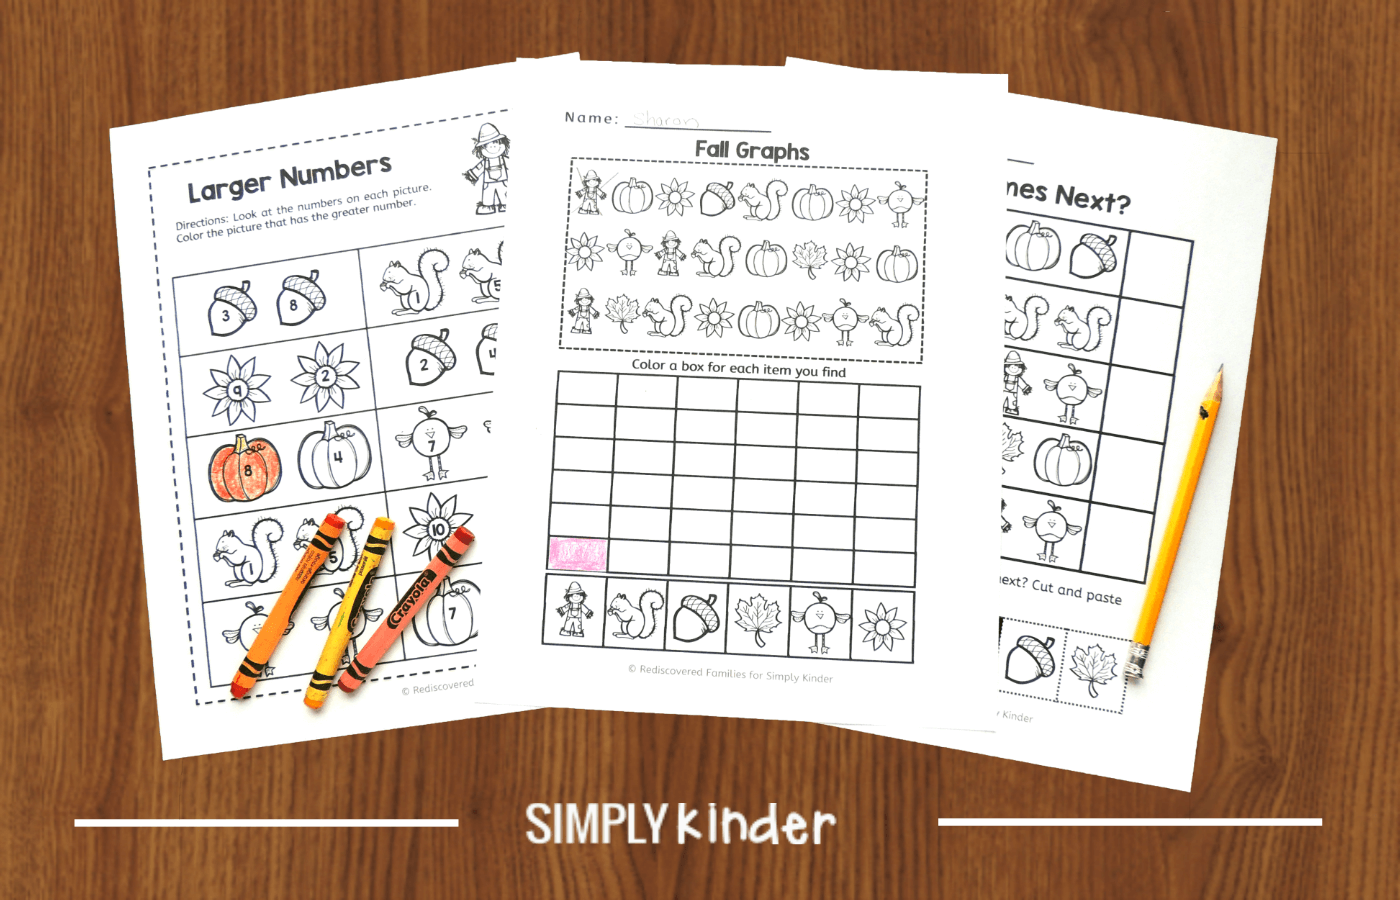 medium resolution of Free Fall Math Worksheets To Use With Kinders - Simply Kinder